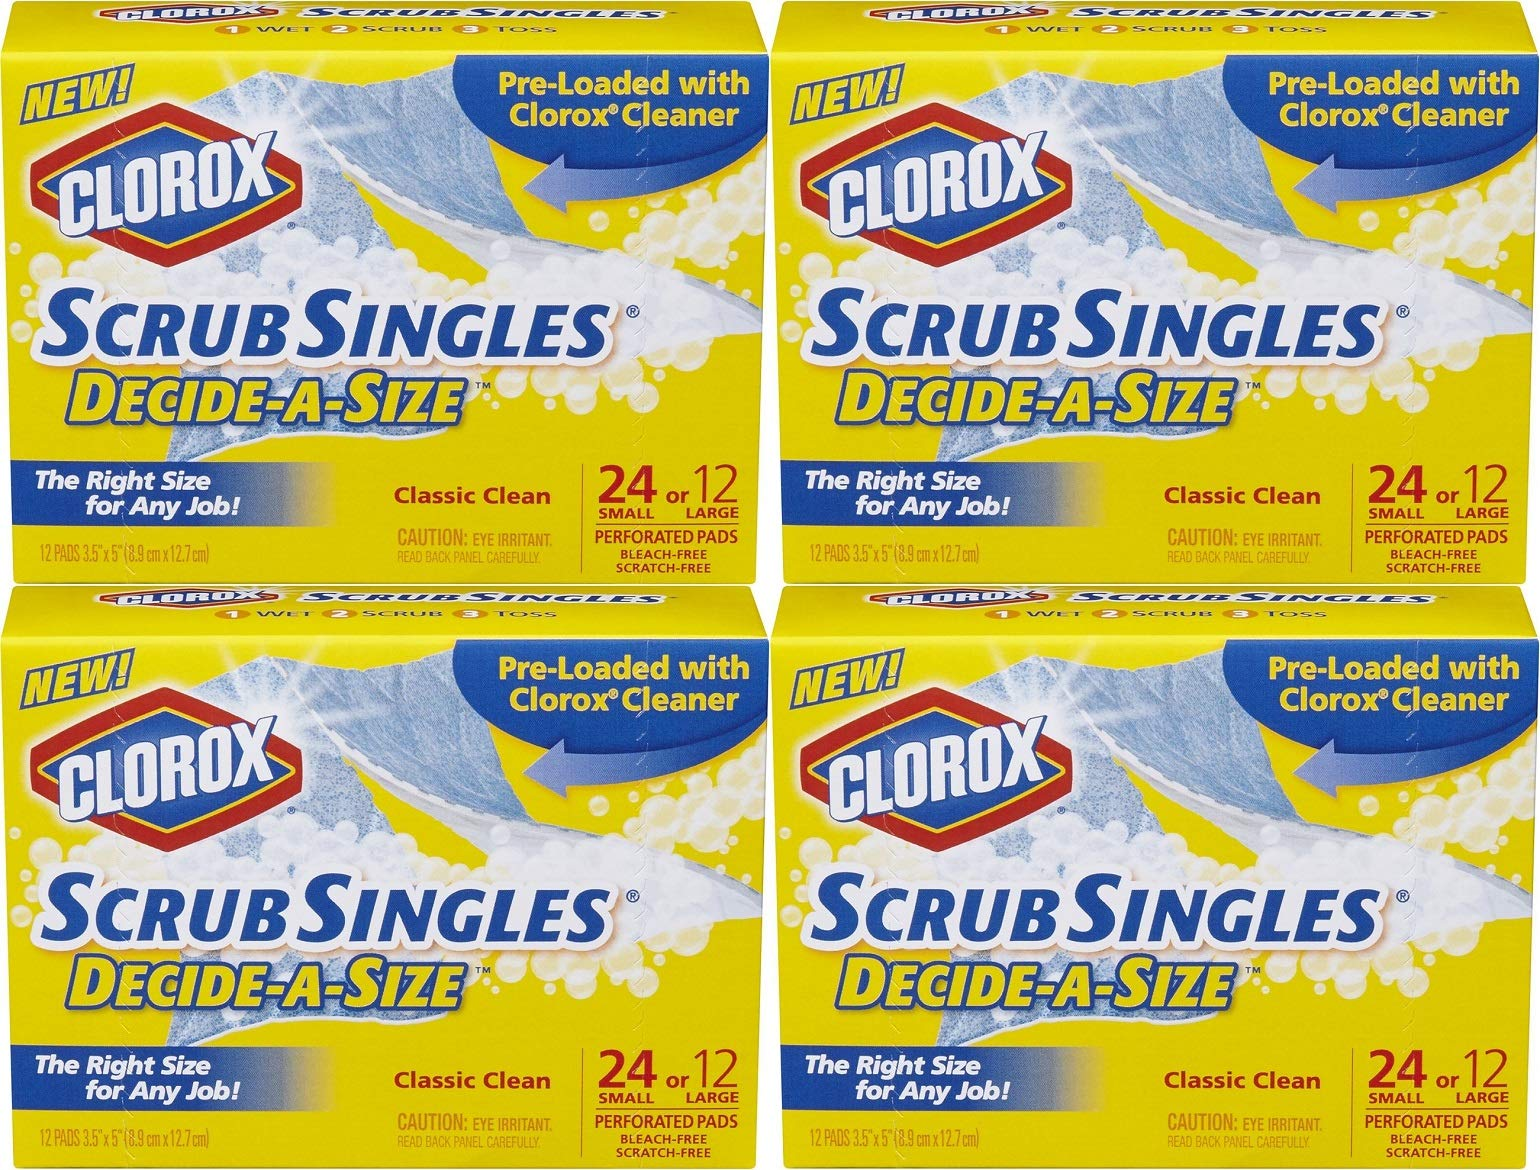 Clorox ScrubSingles Decide-A-Size, 12 Count (Pack of 4) Total 48 Pads by Clorox